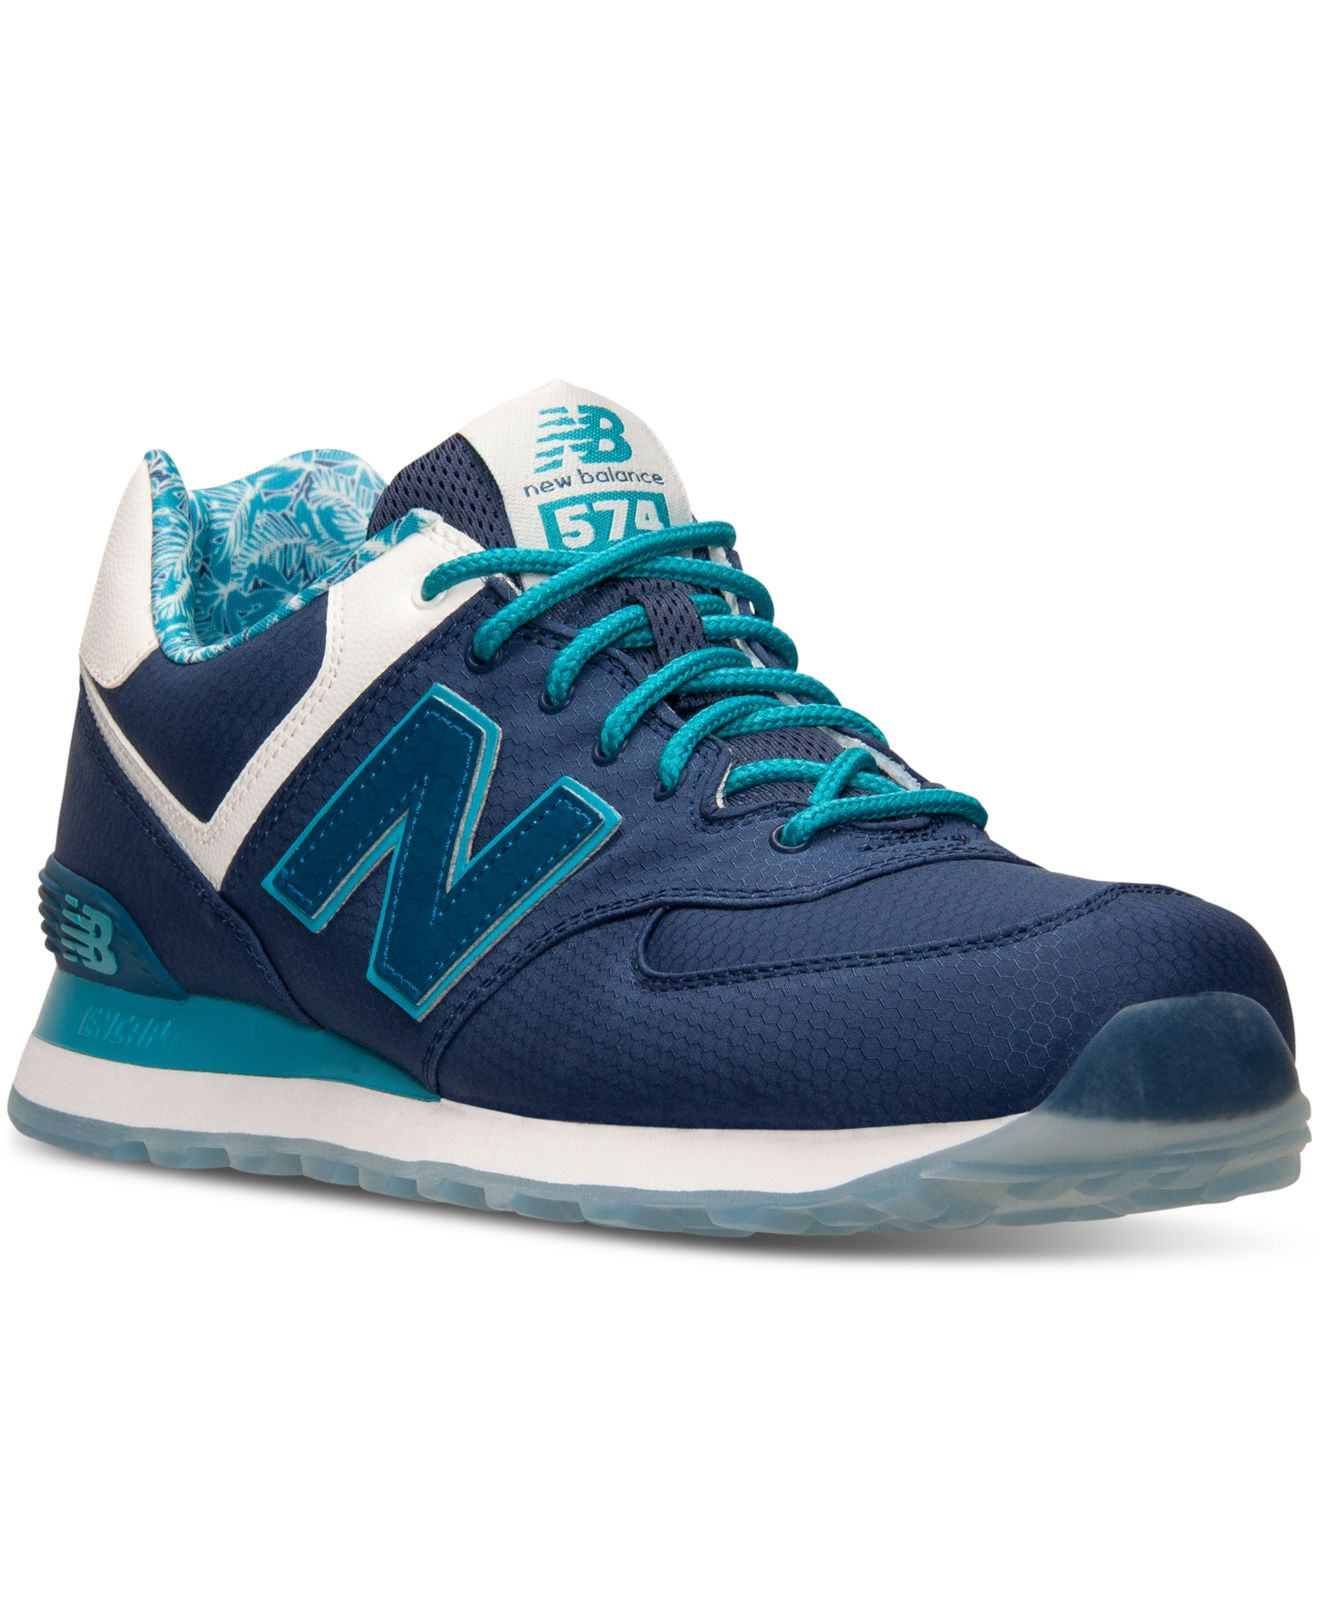 lyst new balance mens 574 luau casual sneakers from finish line